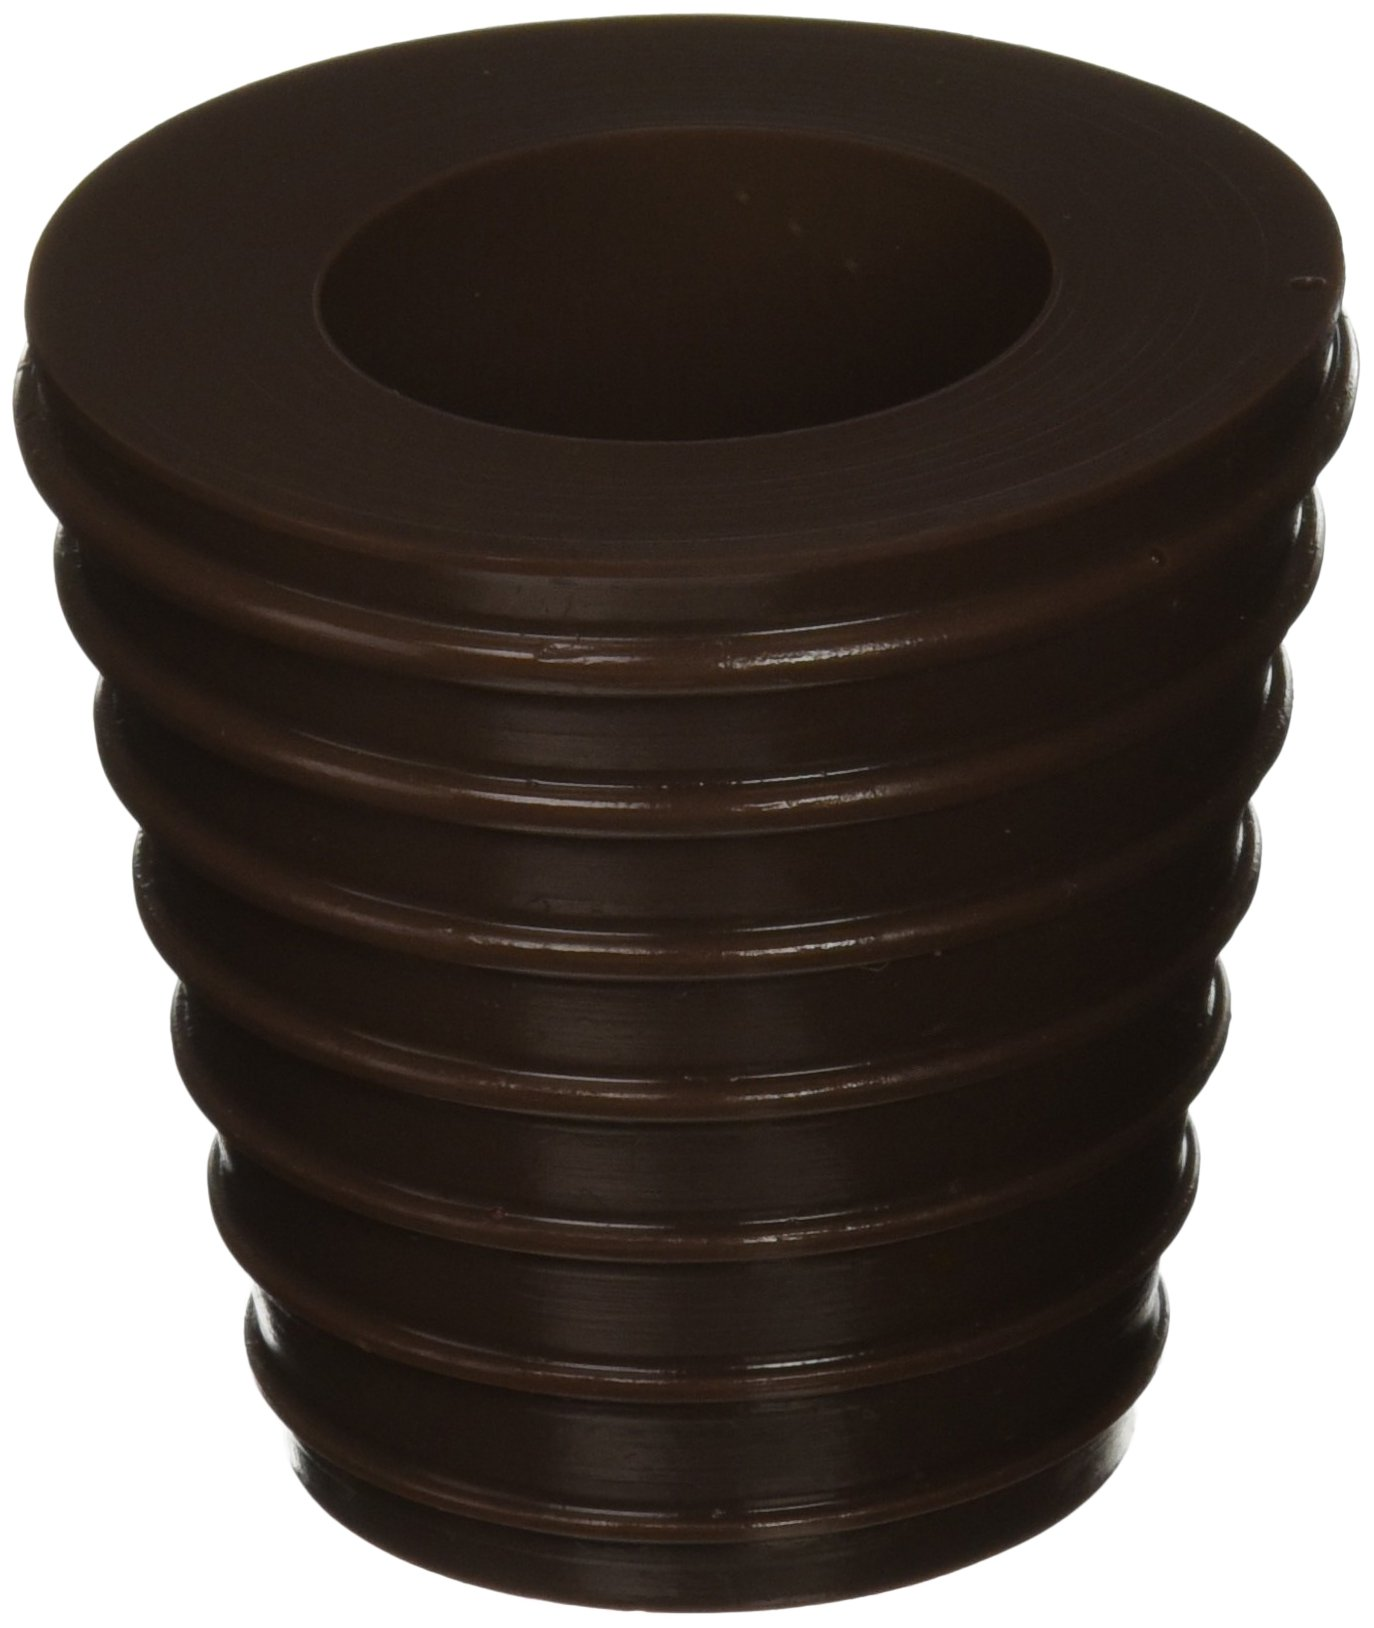 "Patio Umbrella Cone (Brown) Fits 1.5"" Umbrella. Weather Resistant Polyurethane. The Original Made in the USA."